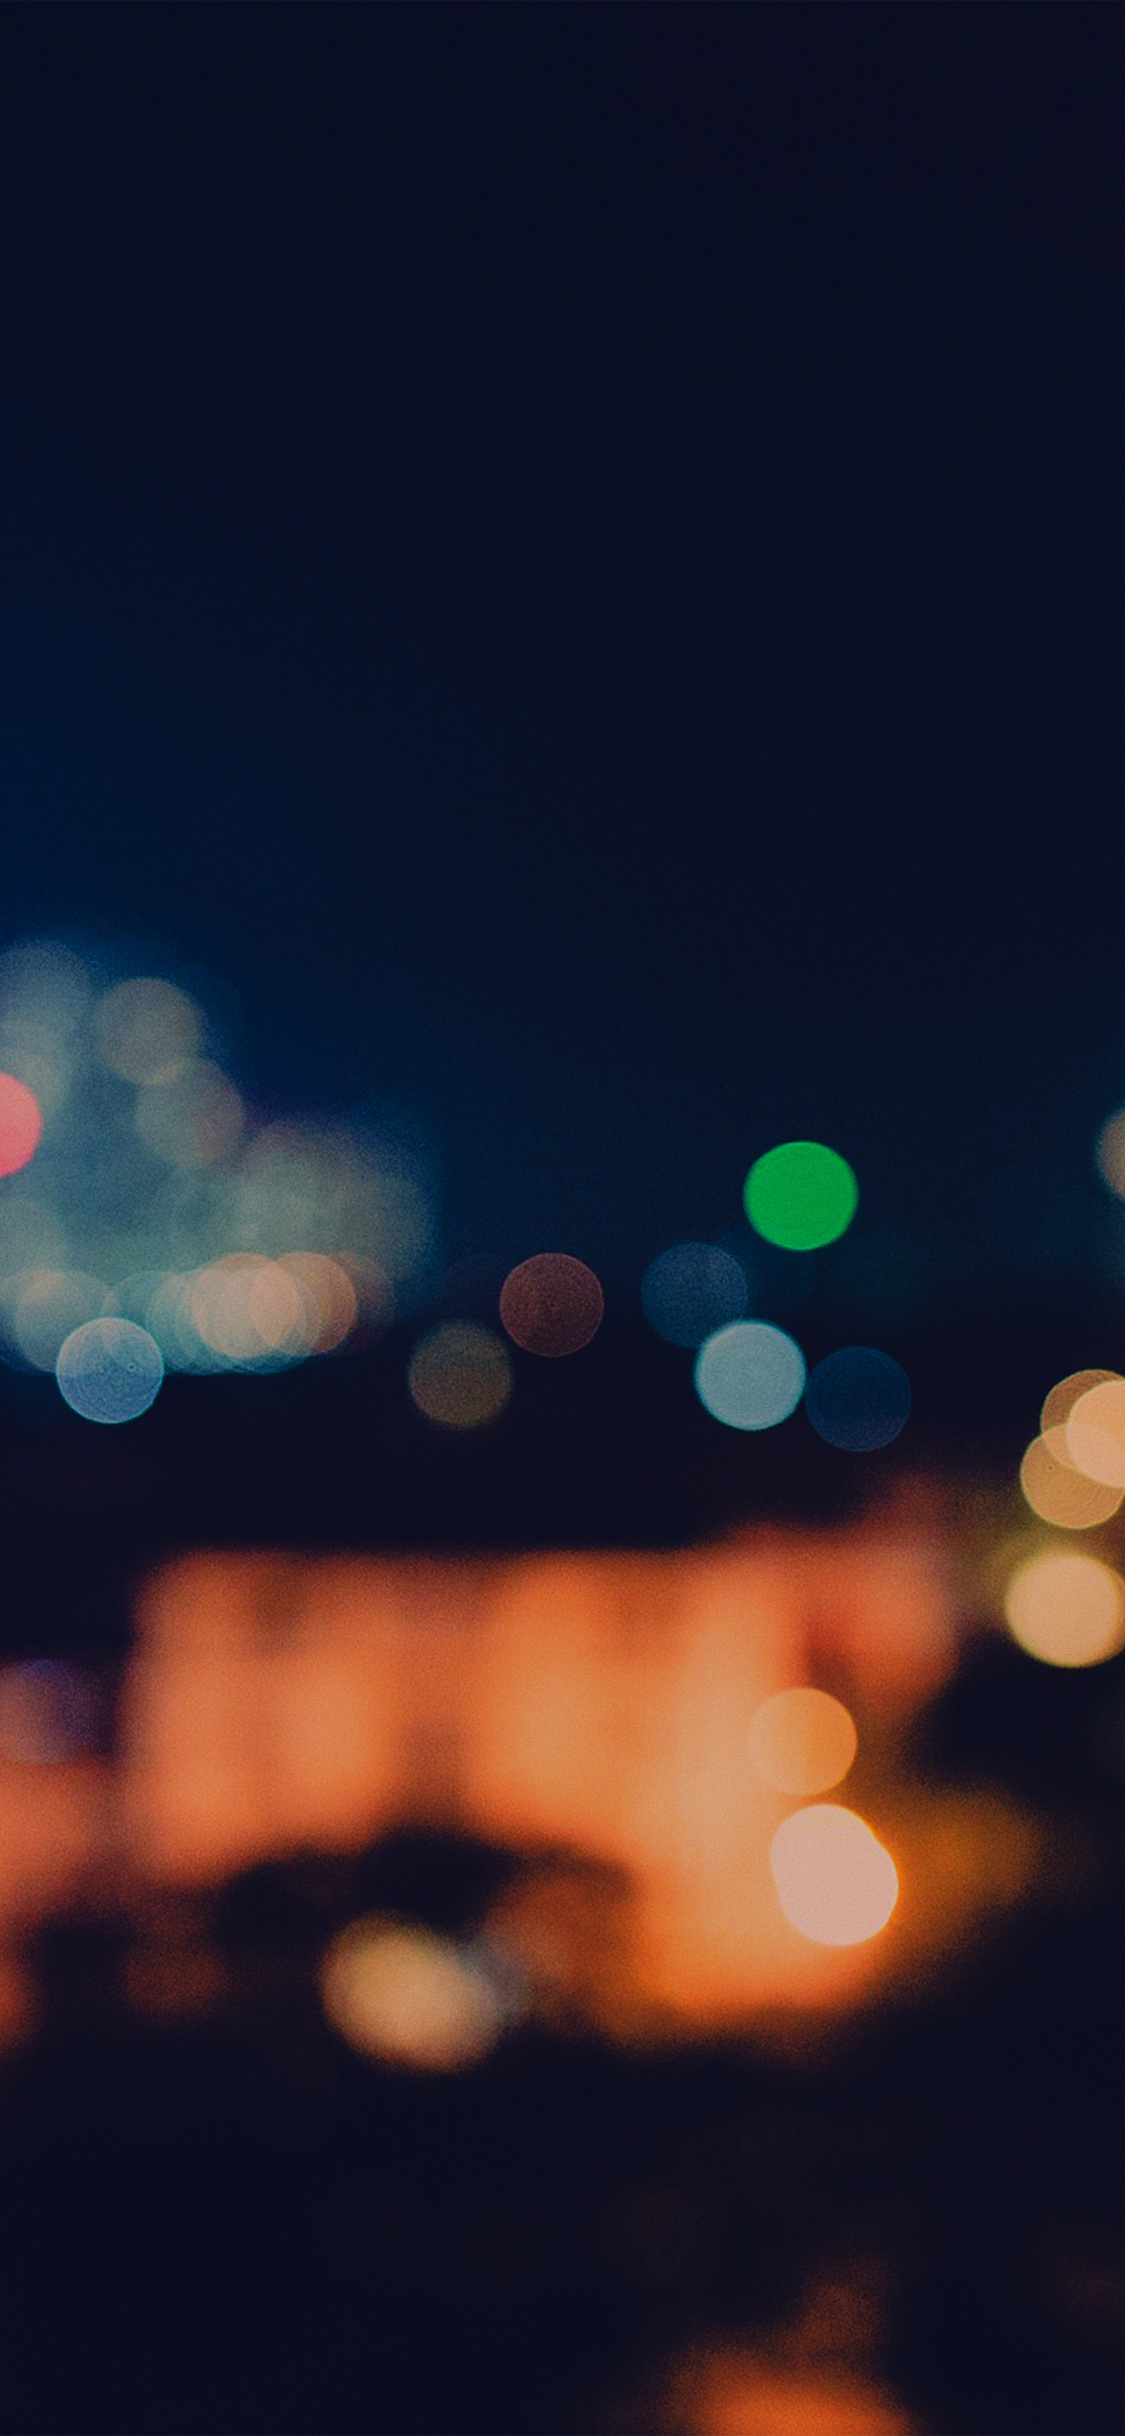 Night Light Wallpaper : night, light, wallpaper, Bokeh, Night, Light, IPhone, Wallpapers, Download